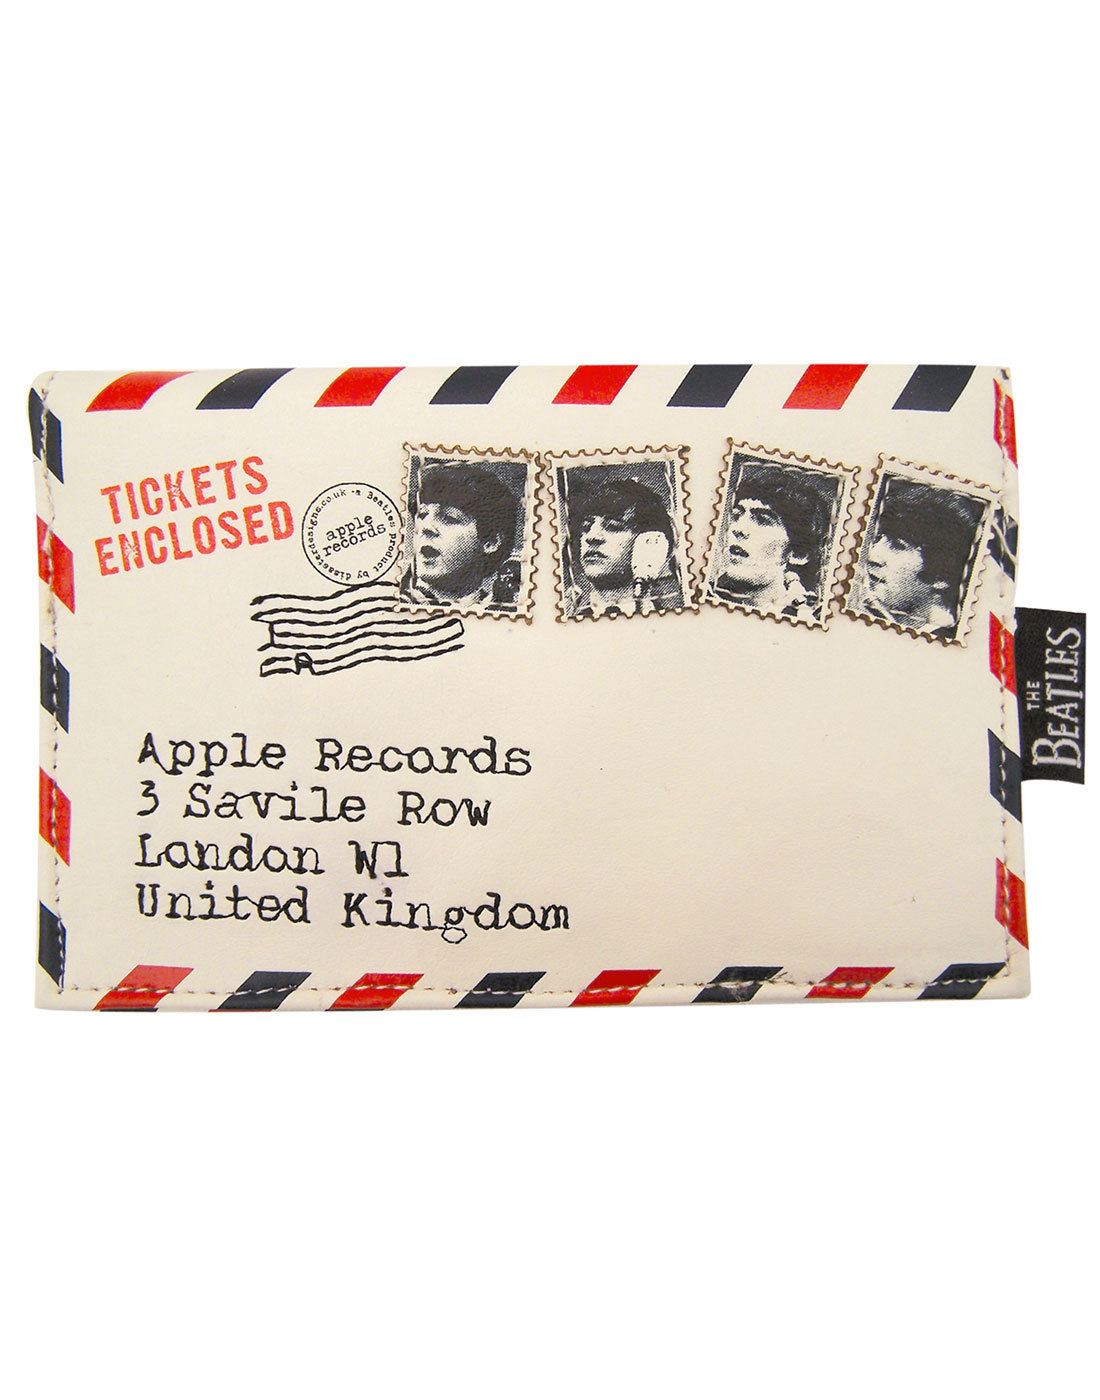 Beatles Ticket To Ride Envelope Retro Purse Wallet